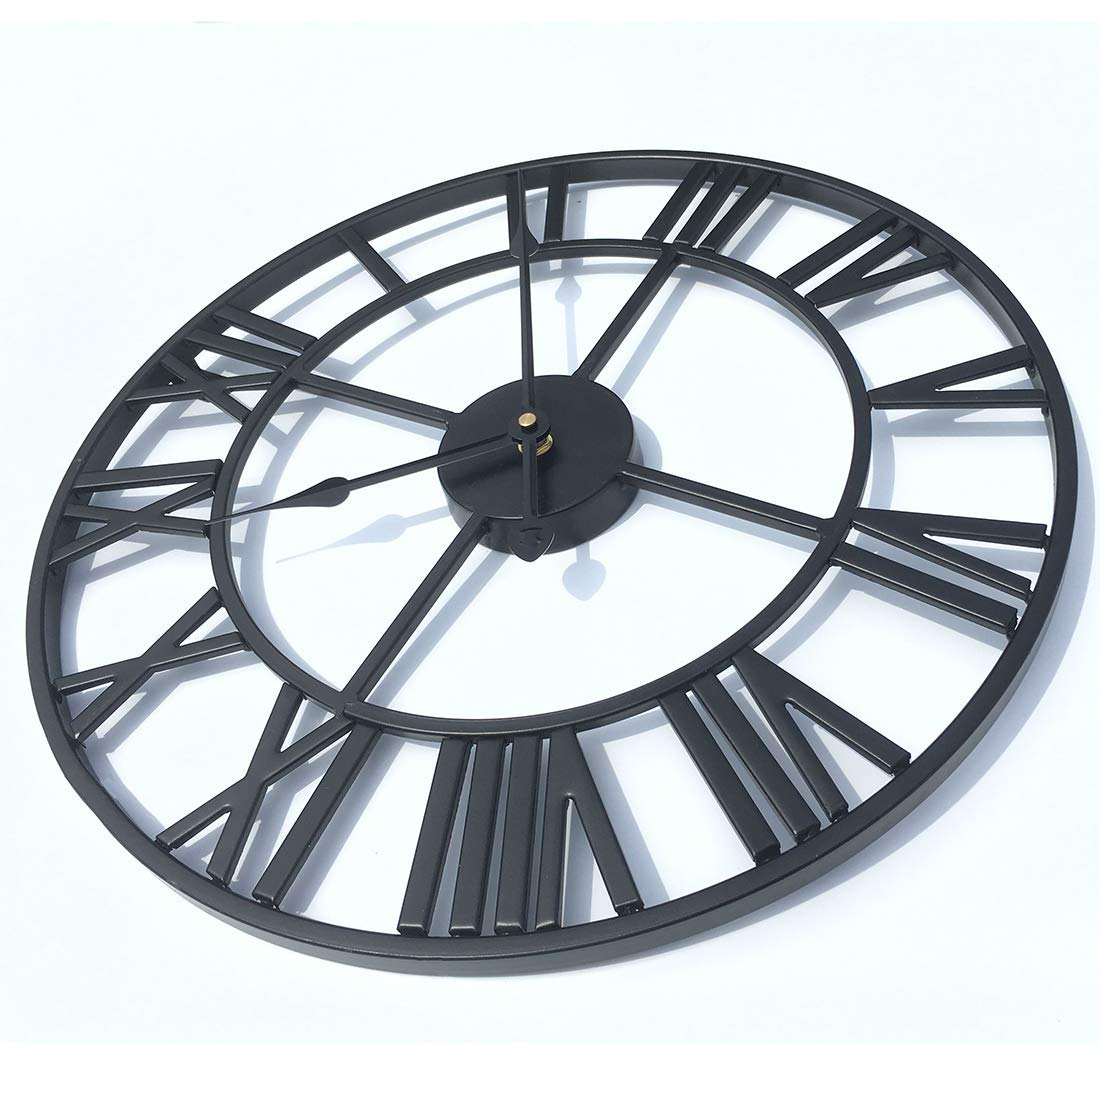 RuiyiF Vintage Wall Clock Non Ticking 16 Inch Silent Industrial Wall Clock Oversized Iron Clocks Large Decorative for Kitchen Living Room Bathroom Black